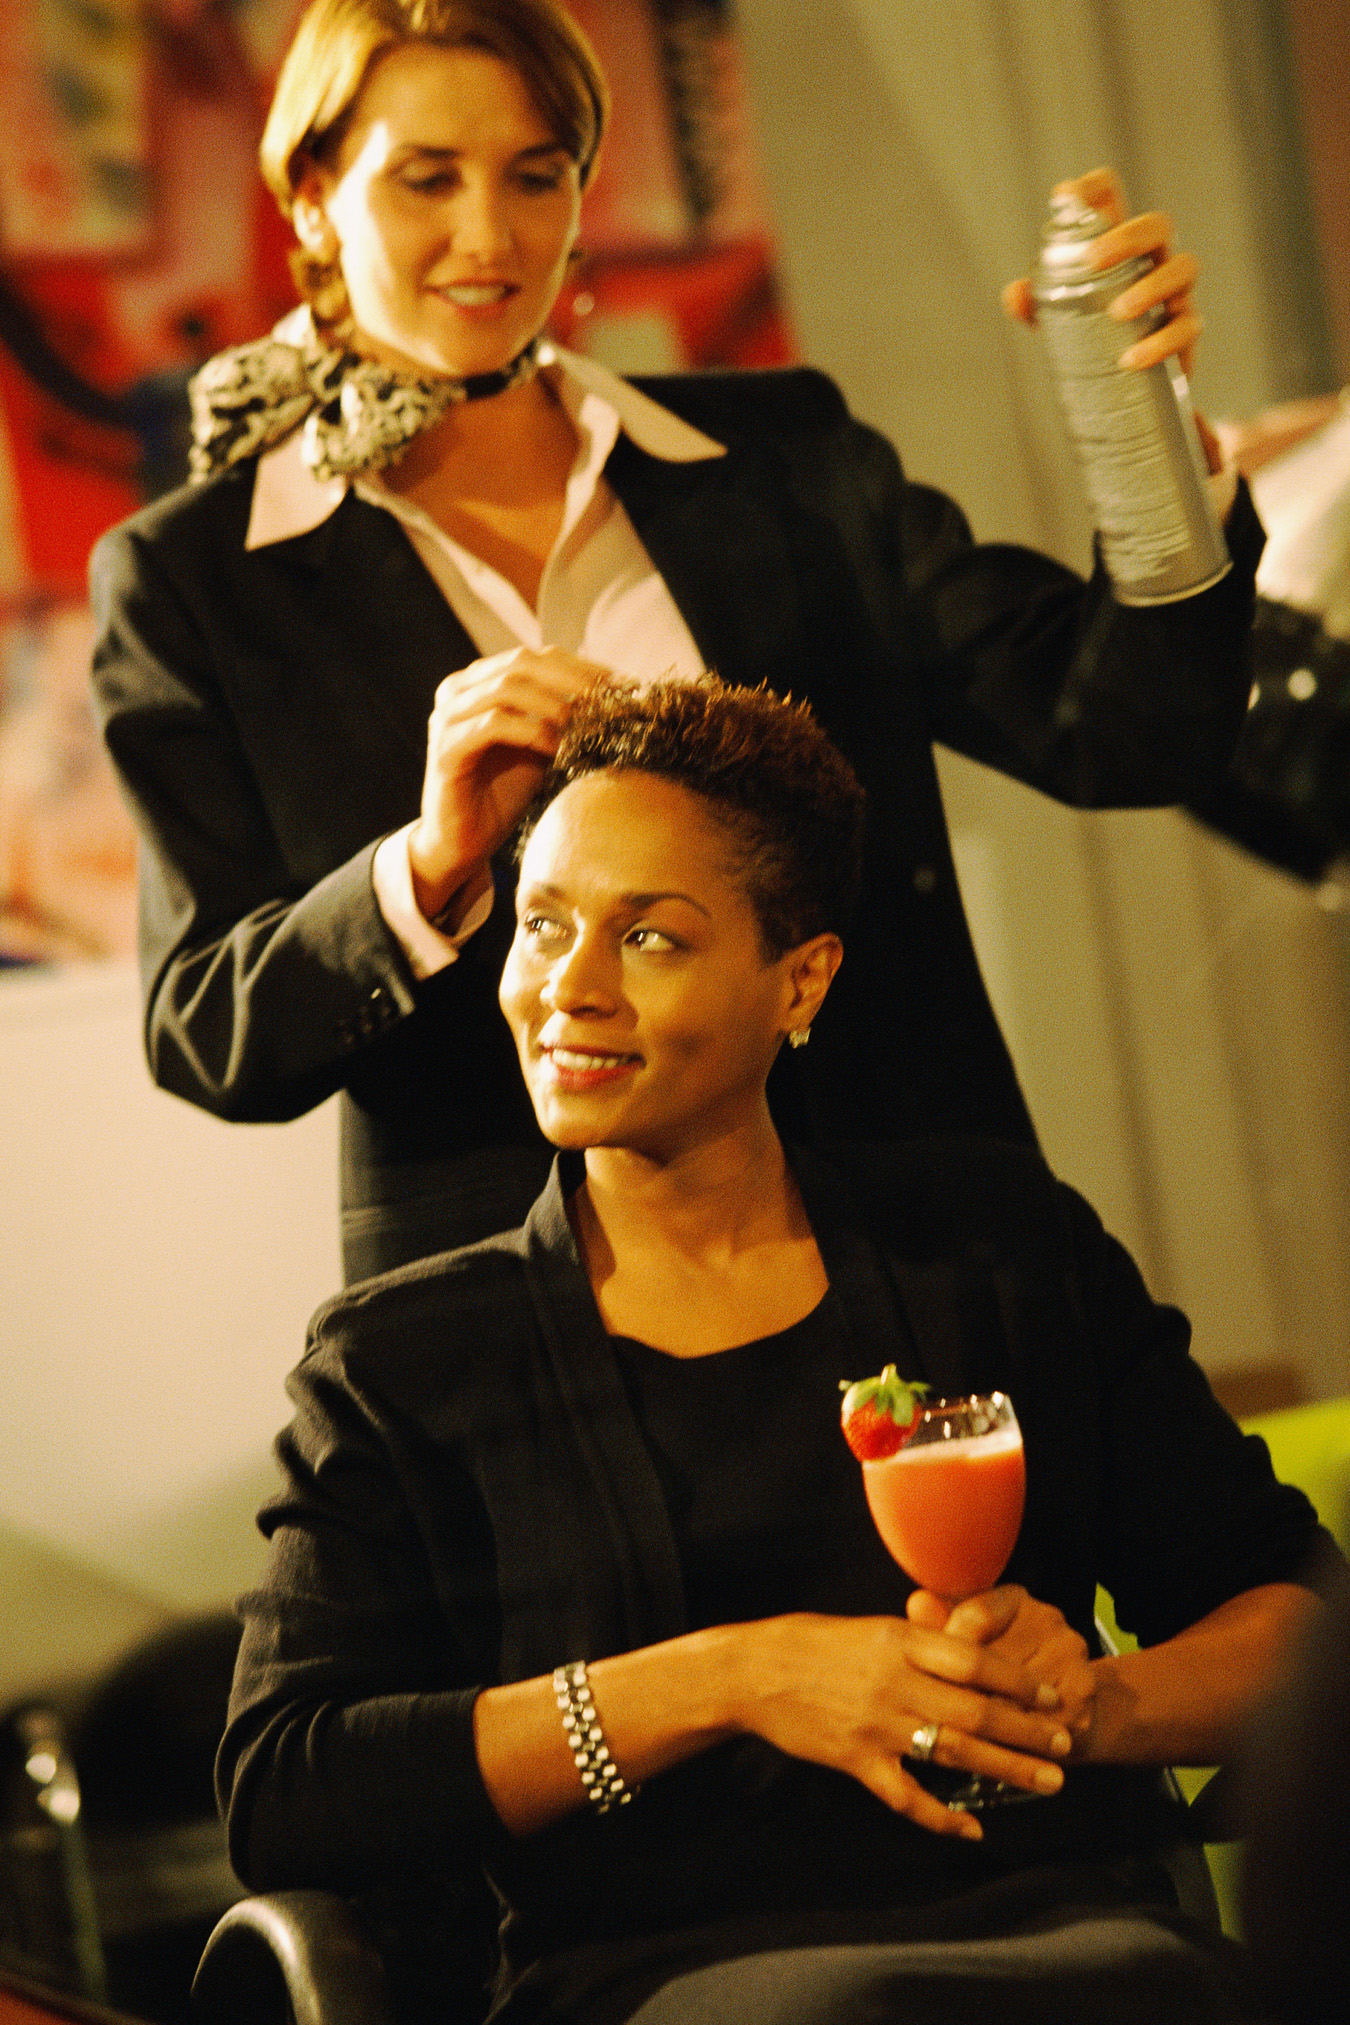 Woman getting her hair styled by another woman